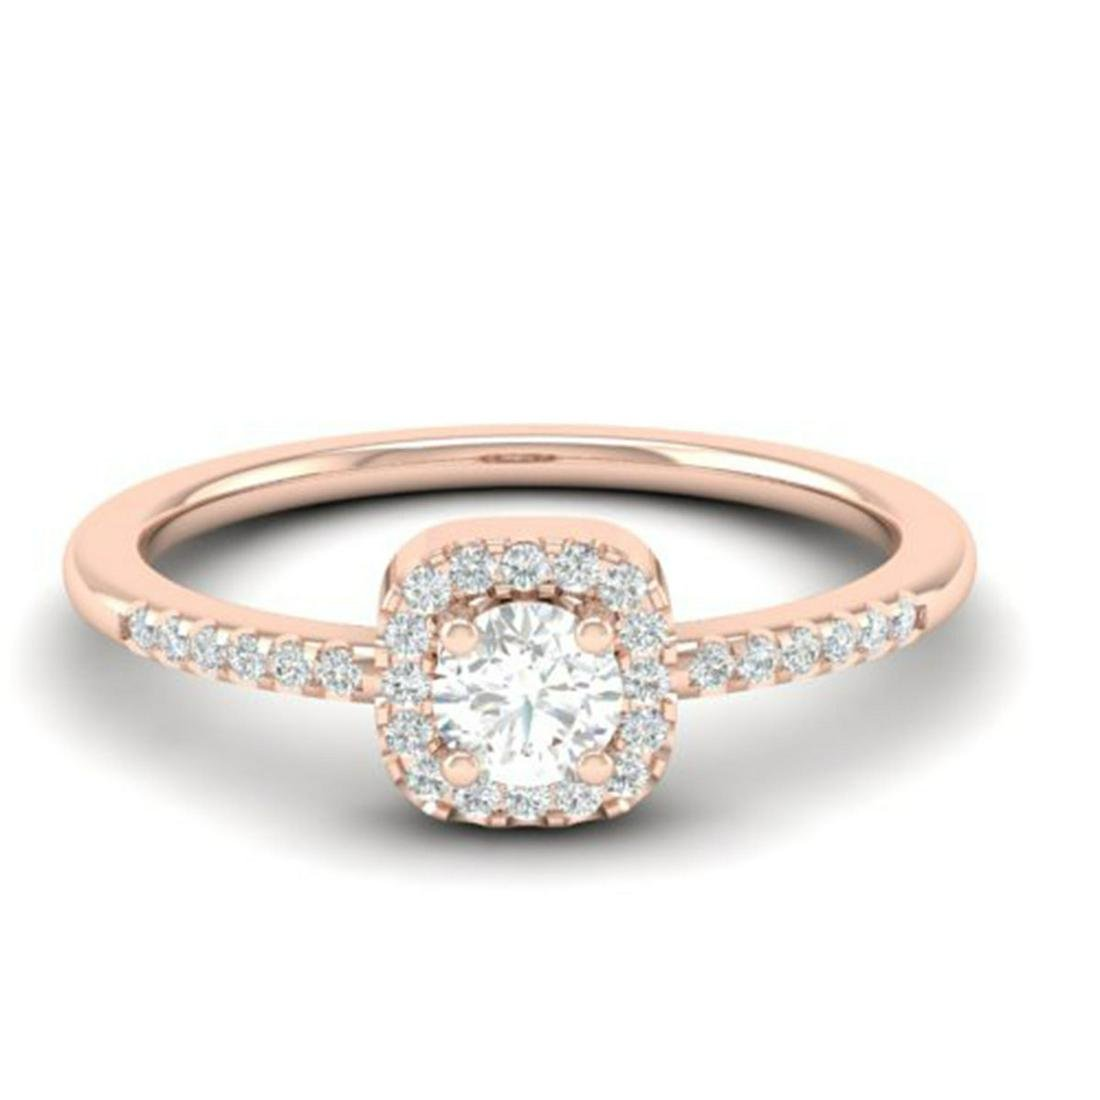 0.45 ctw VS/SI Diamond Ring Halo 14K Rose Gold